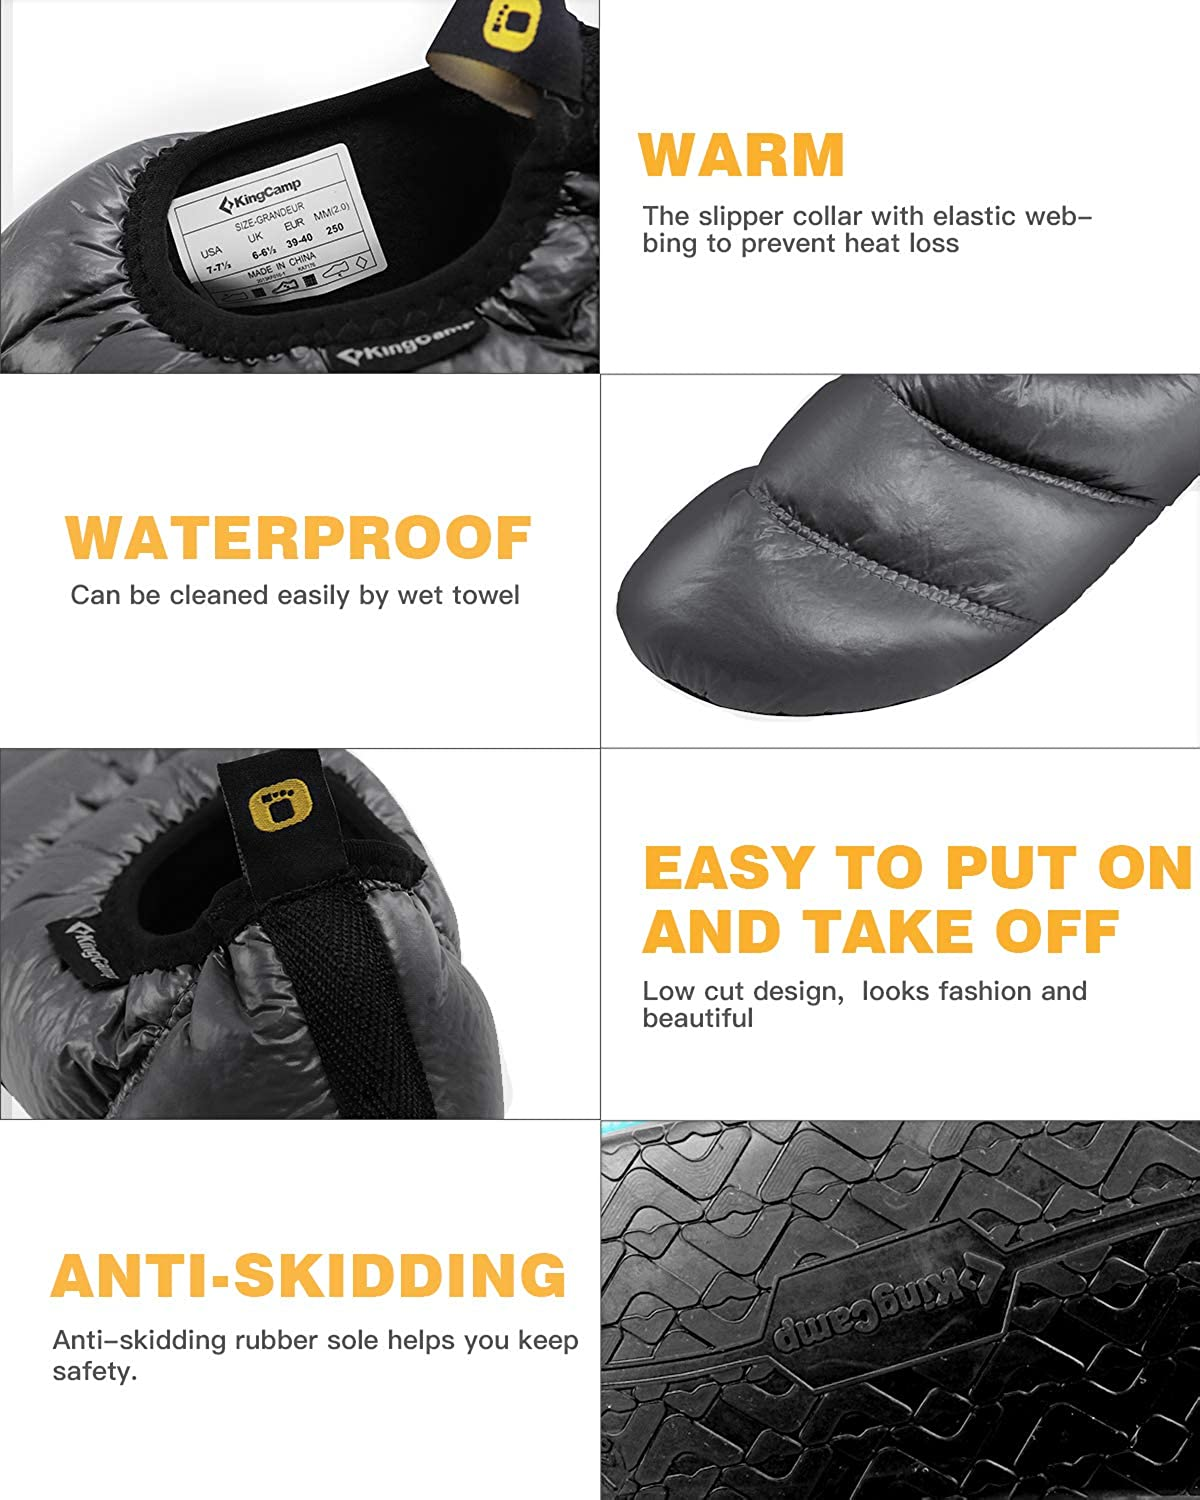 KingCamp Unisex Warm Camping Slippers Soft Winter Slippers with Non Slip Rubber Sole /& Carry Bag 7 Colors